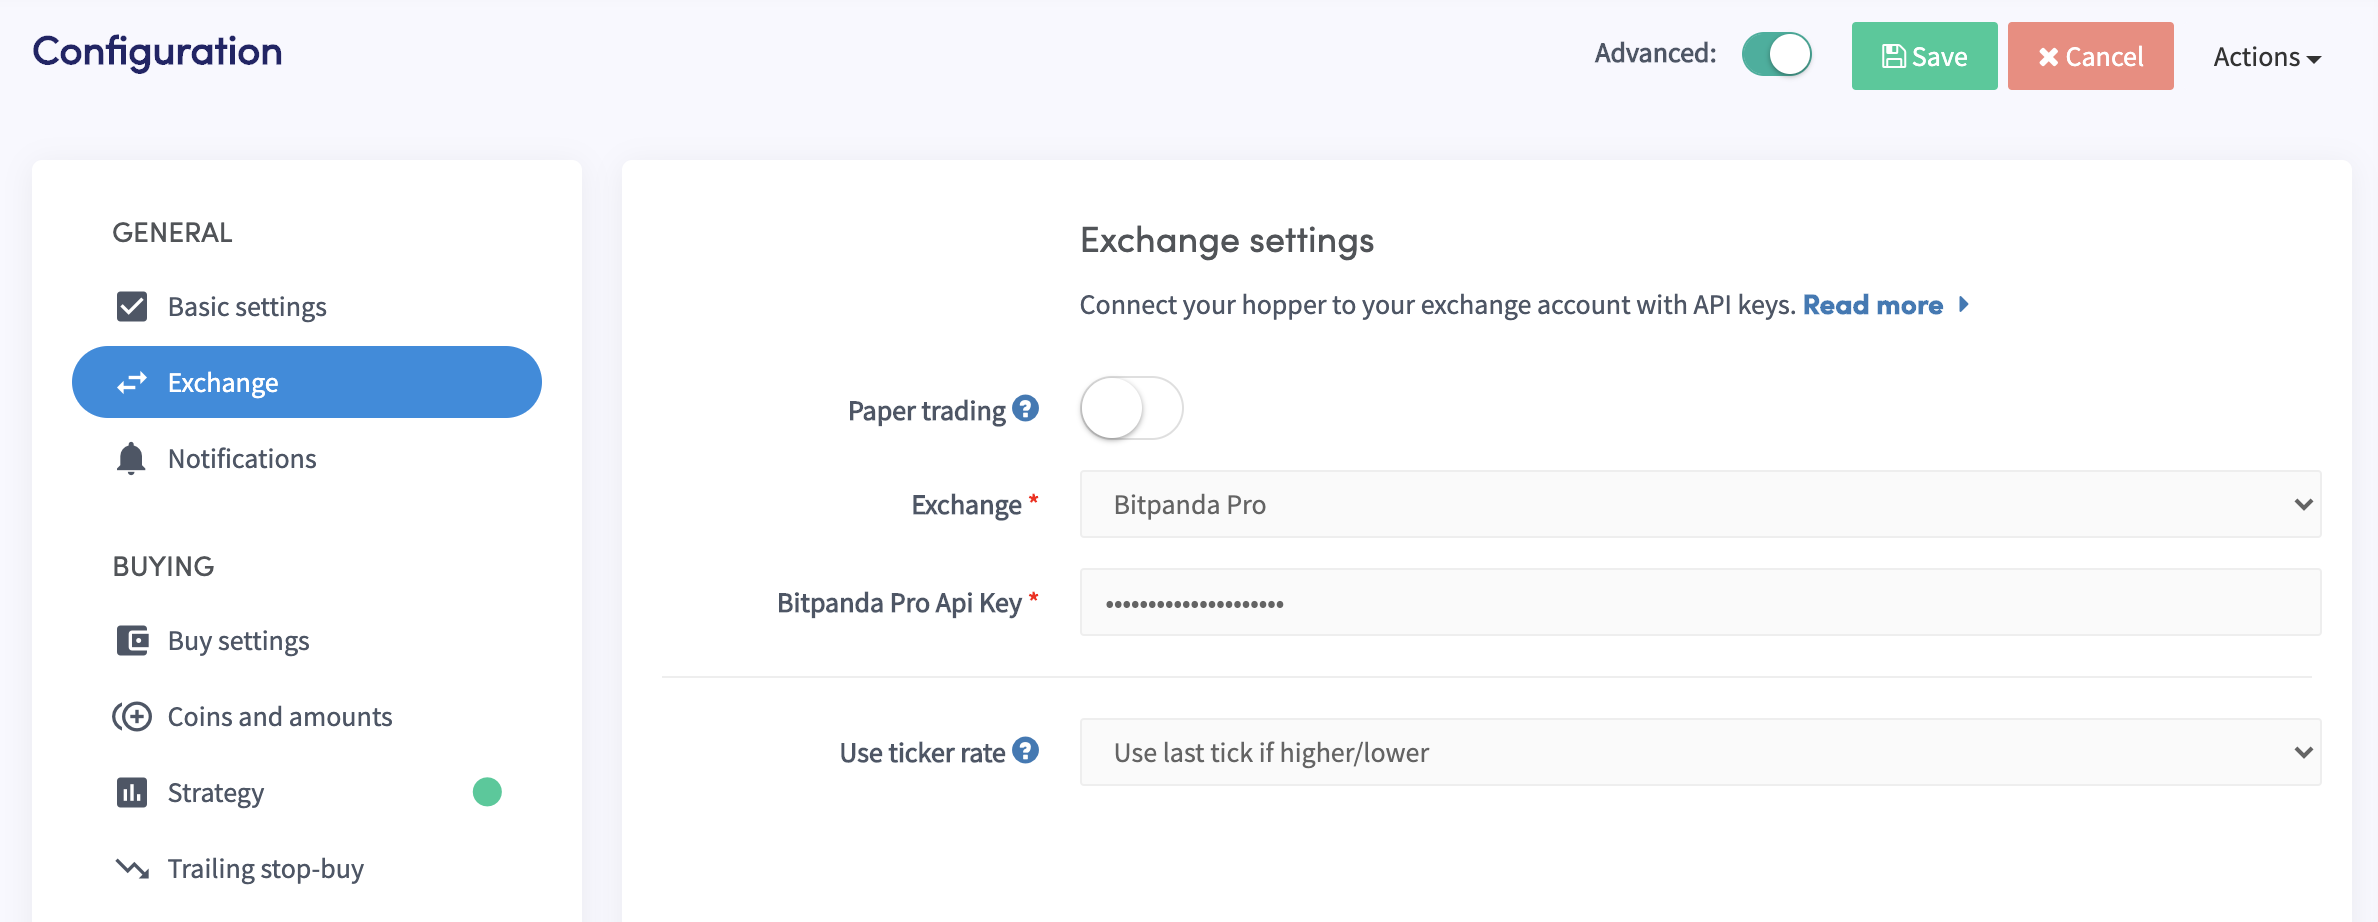 Bit panda bitpanda exchange pro Automated automatic trading bot platform crypto cryptocurrencies Cryptohopper bitcoin ethereum